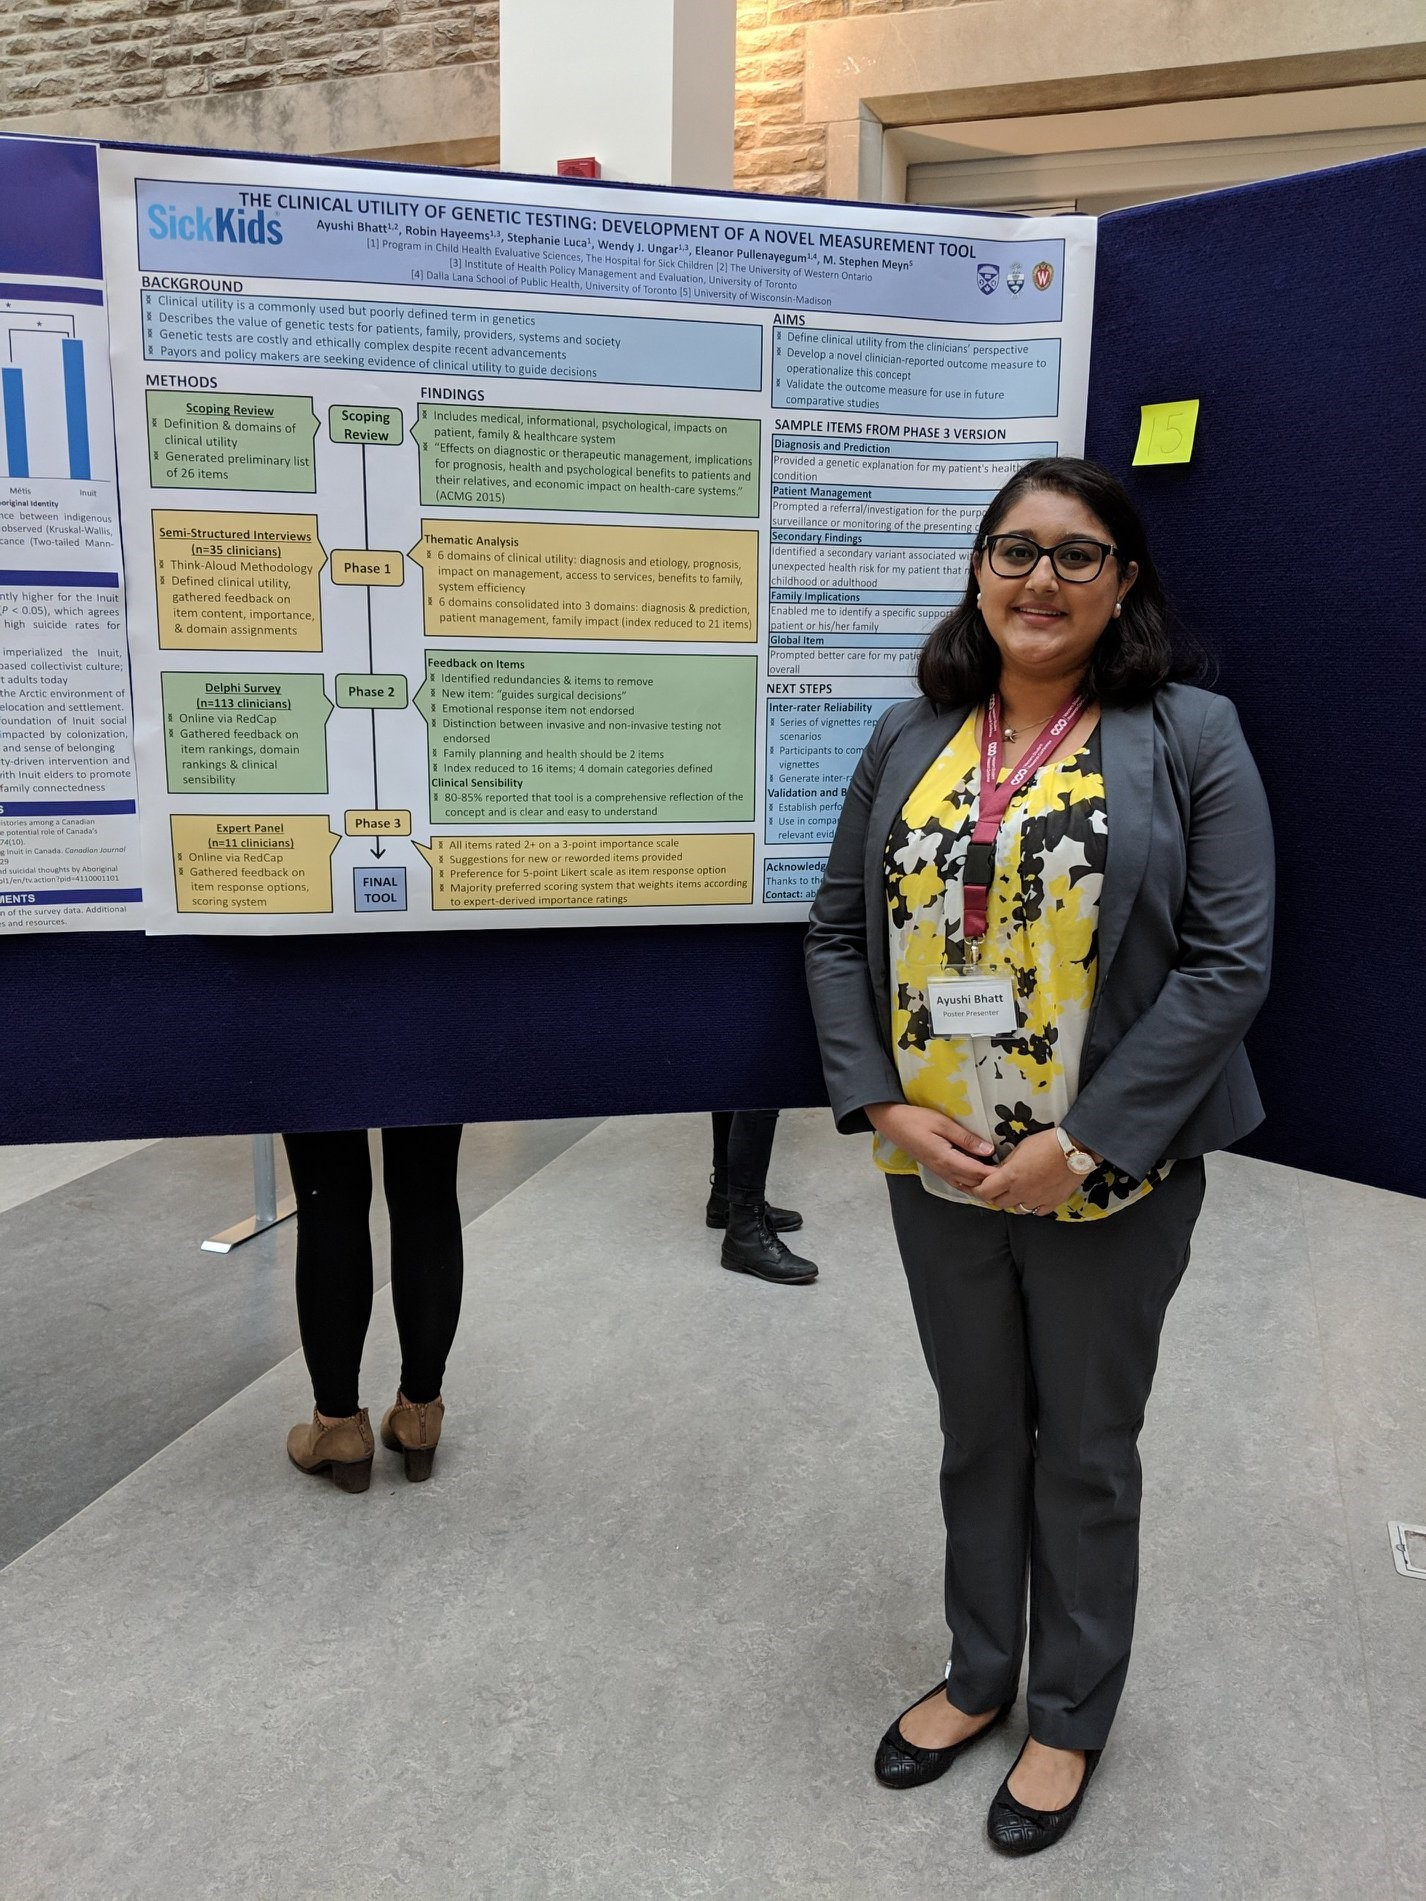 Ayushi Bhatt presenting at the Western University Undergraduate Student Research Conference - March 2019